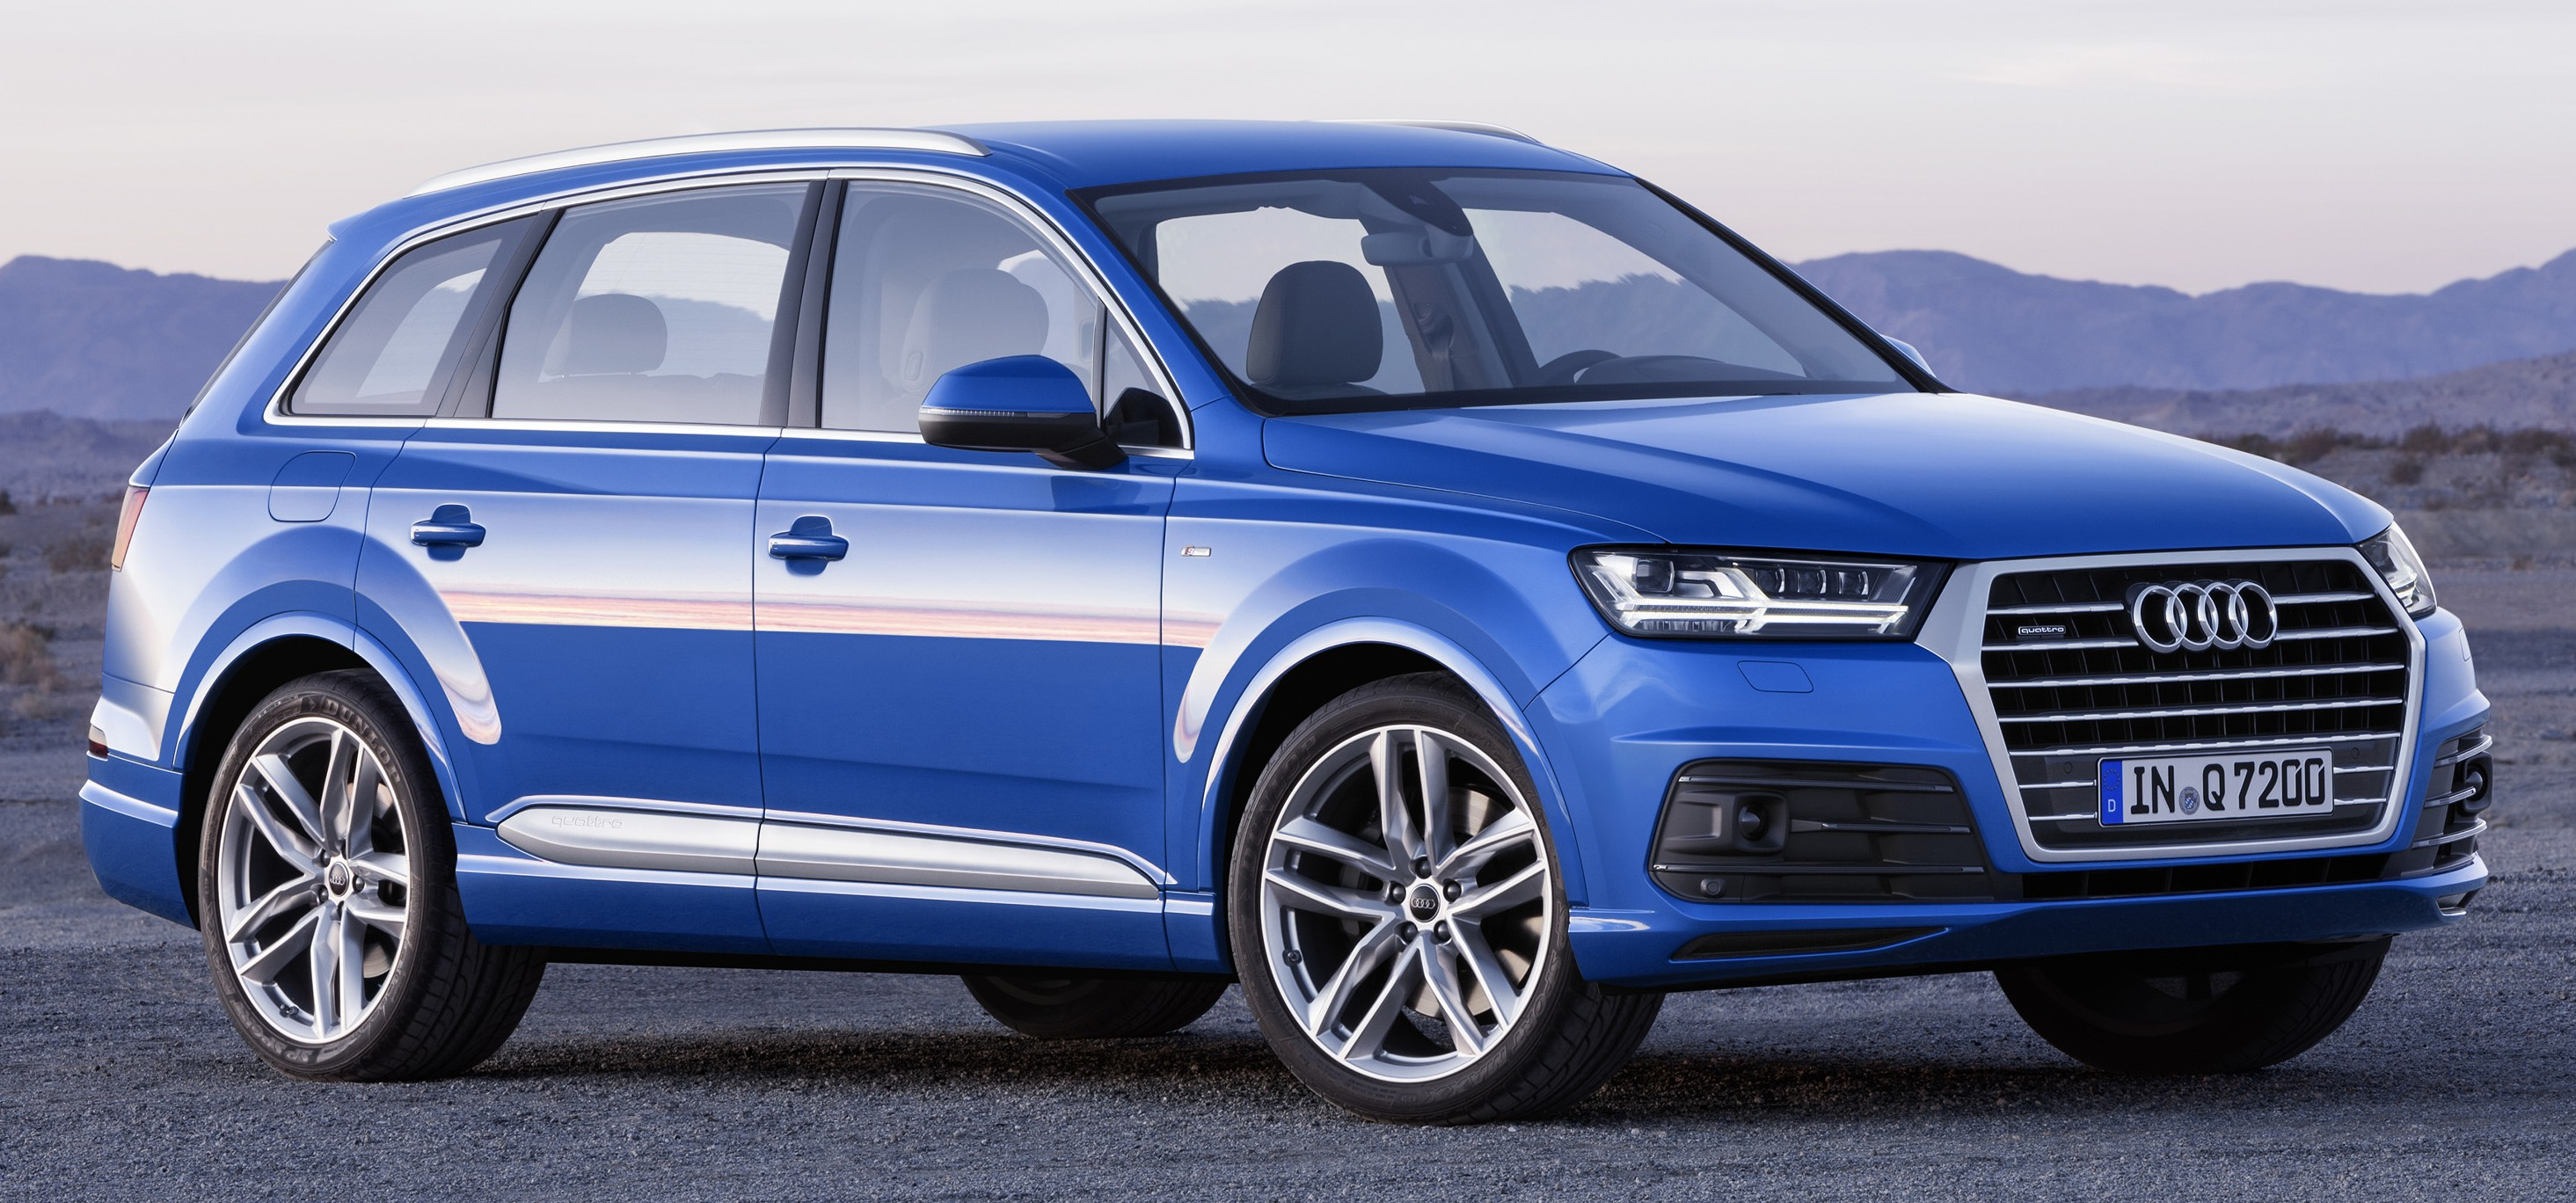 Audi Suv Q7 >> Audi Q7 – second generation 7-seater SUV debuts Paul Tan - Image 336985